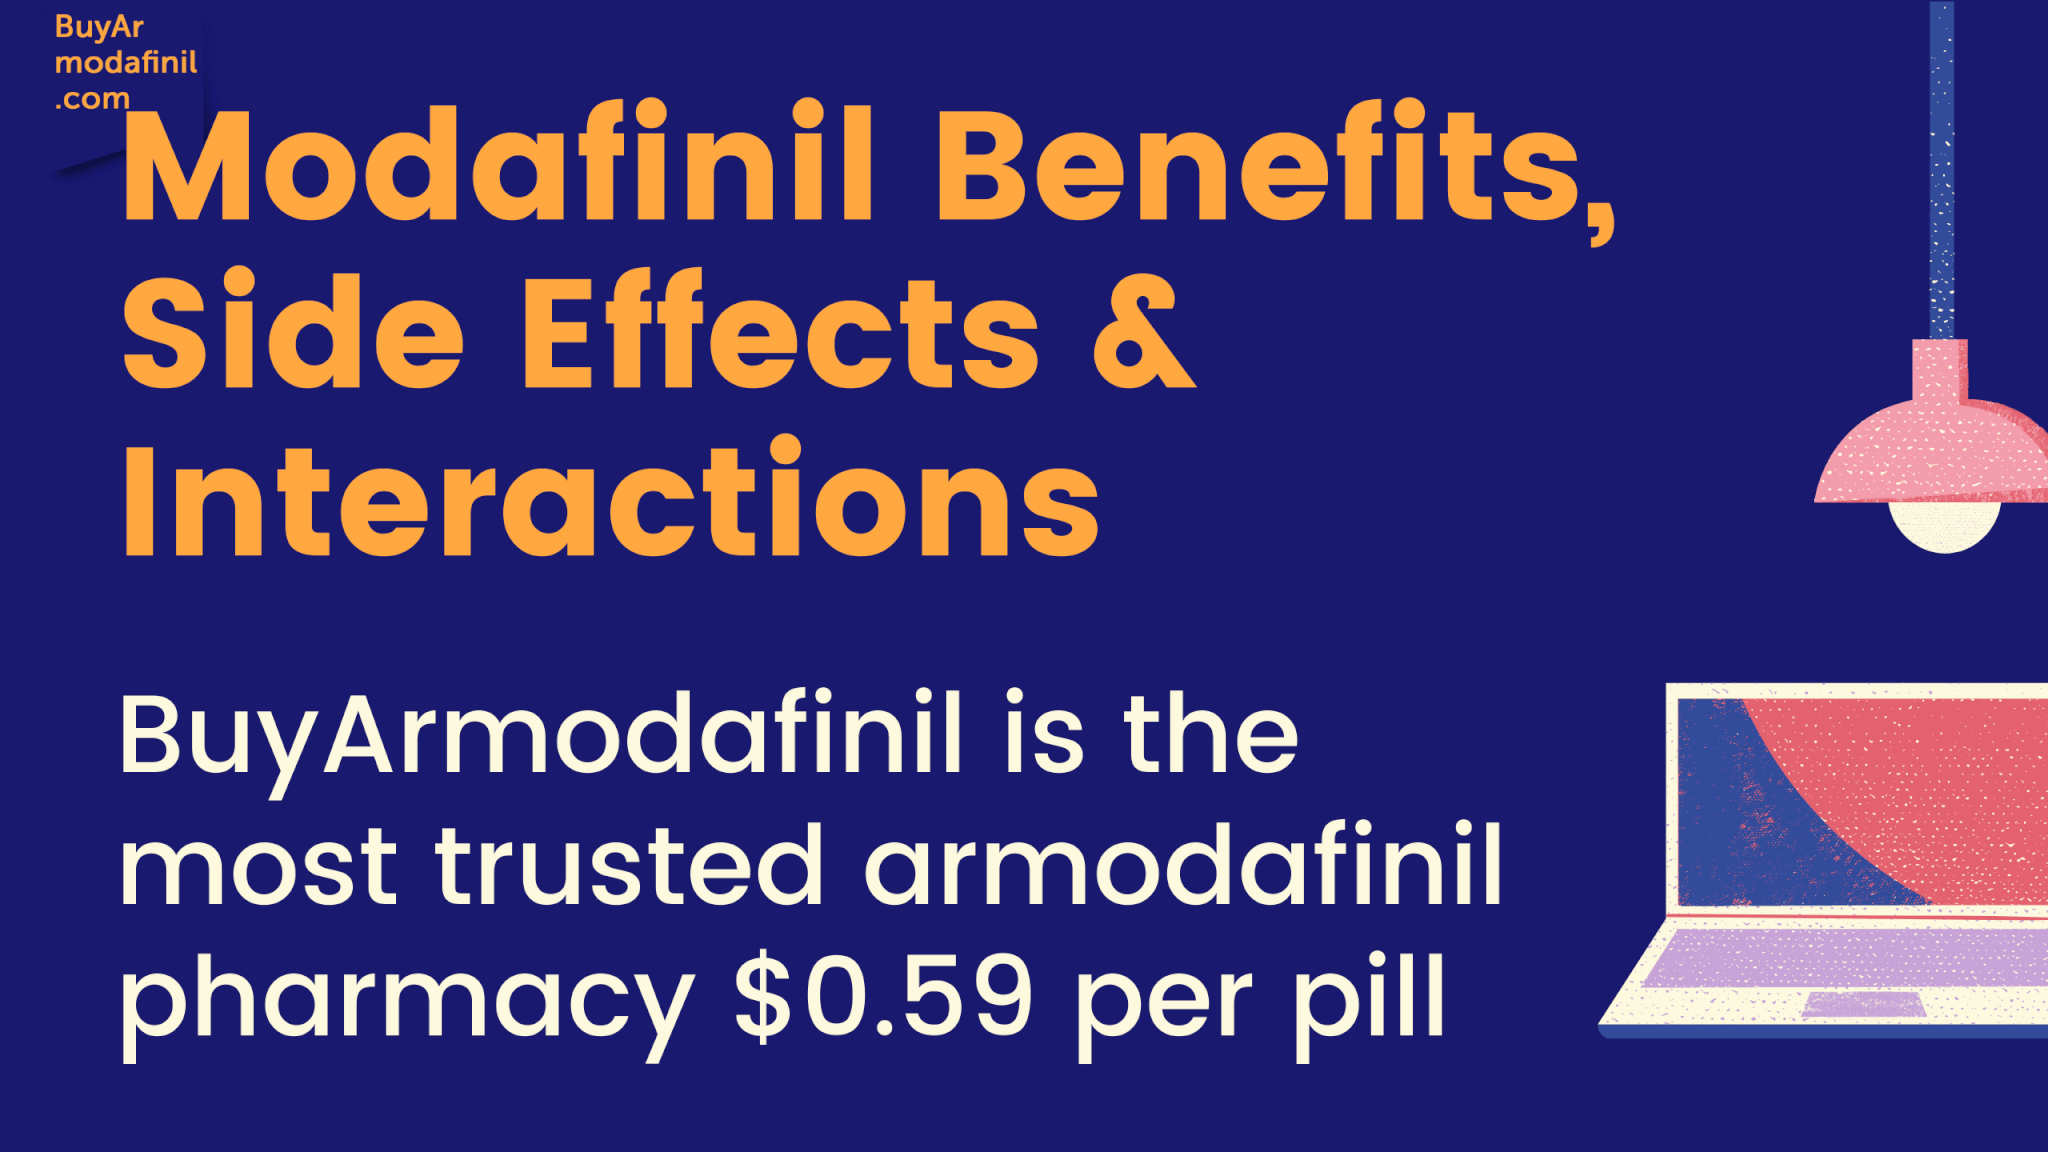 Modafinil Benefits, Side Effects, Interactions